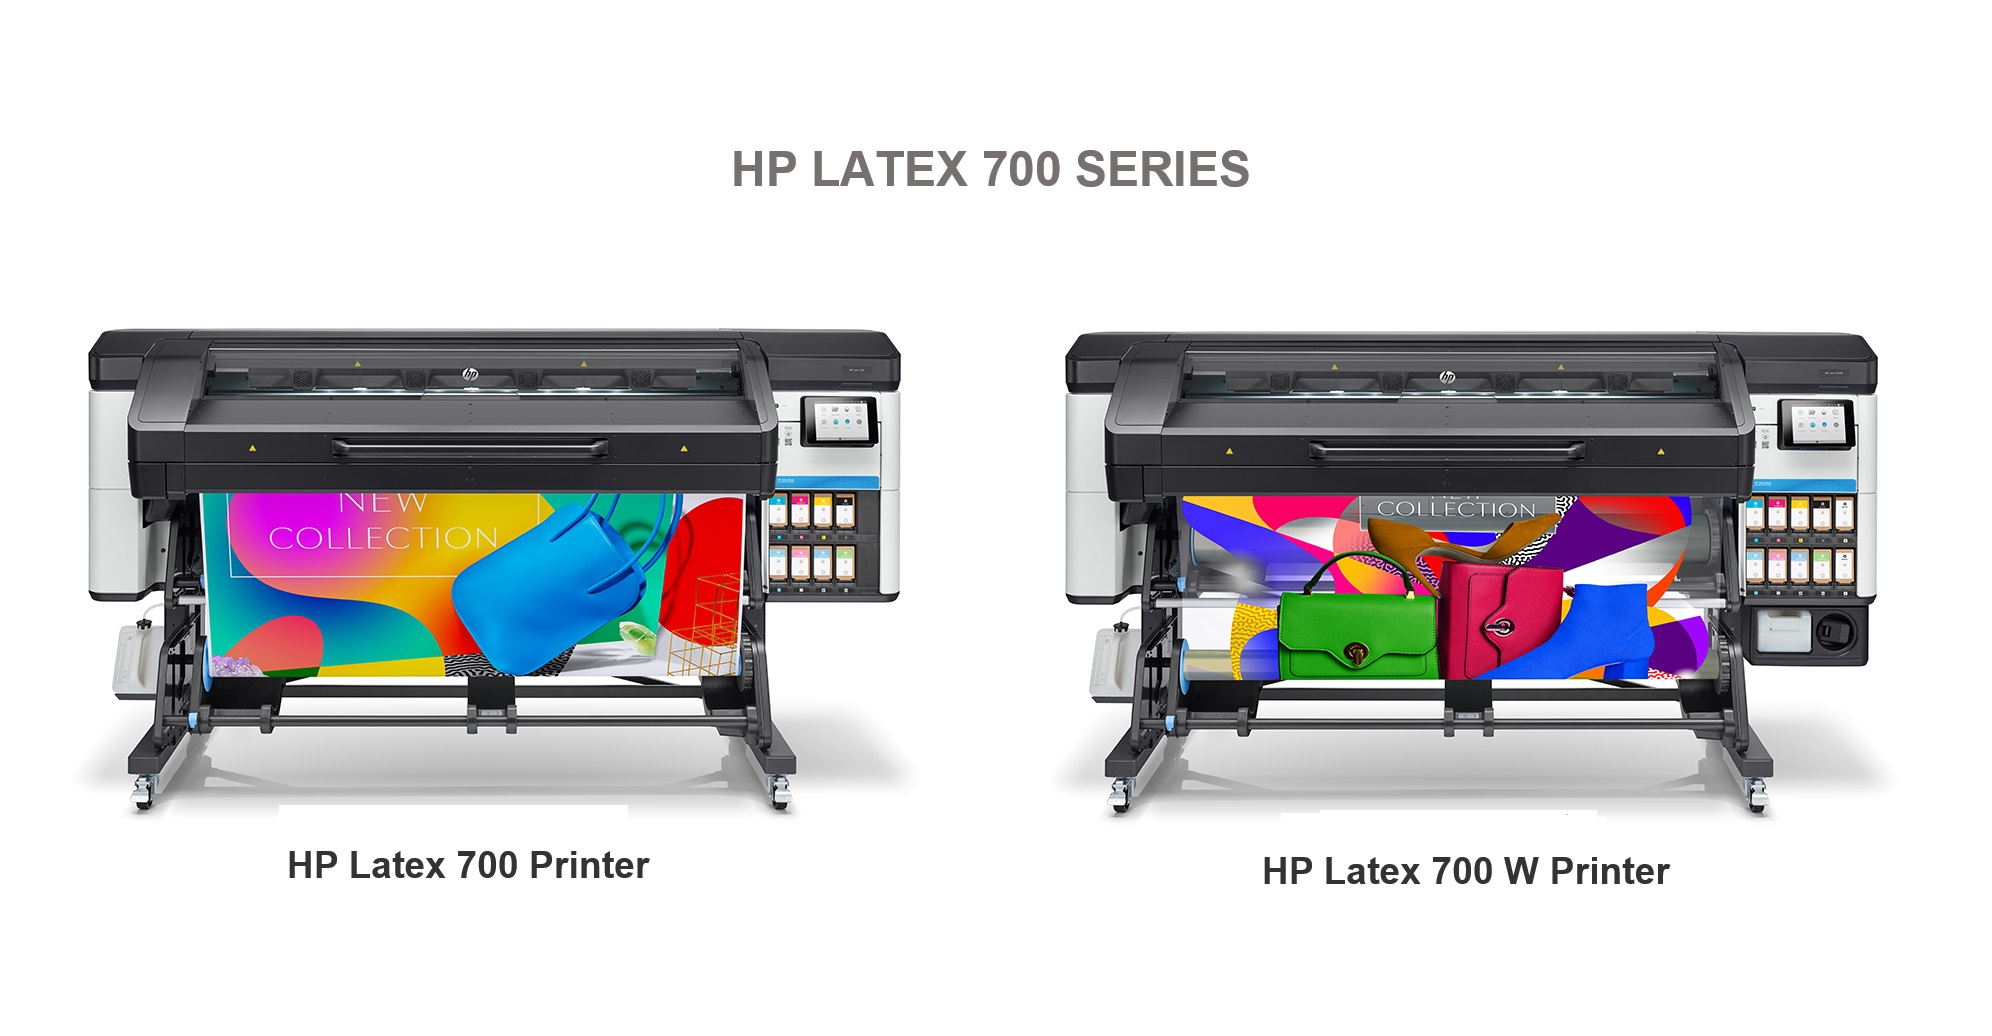 HP Latex 700 Series HP for Print Service Providers  by Jackys Business Solutions Dubai